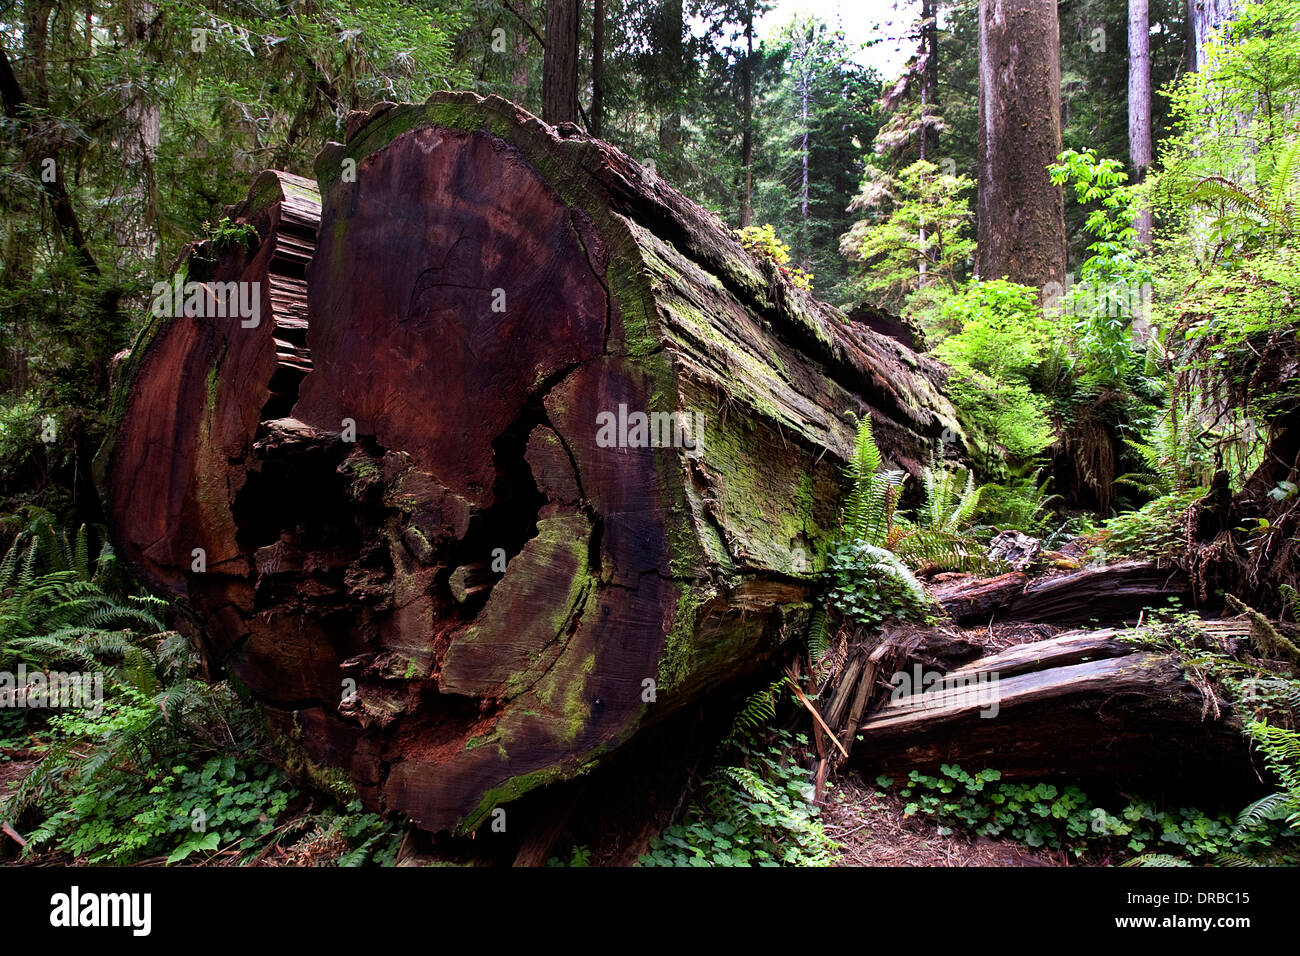 Giant Redwood tree on the floor of a Redwood forest in the Redwoods National Park California USA - Stock Image